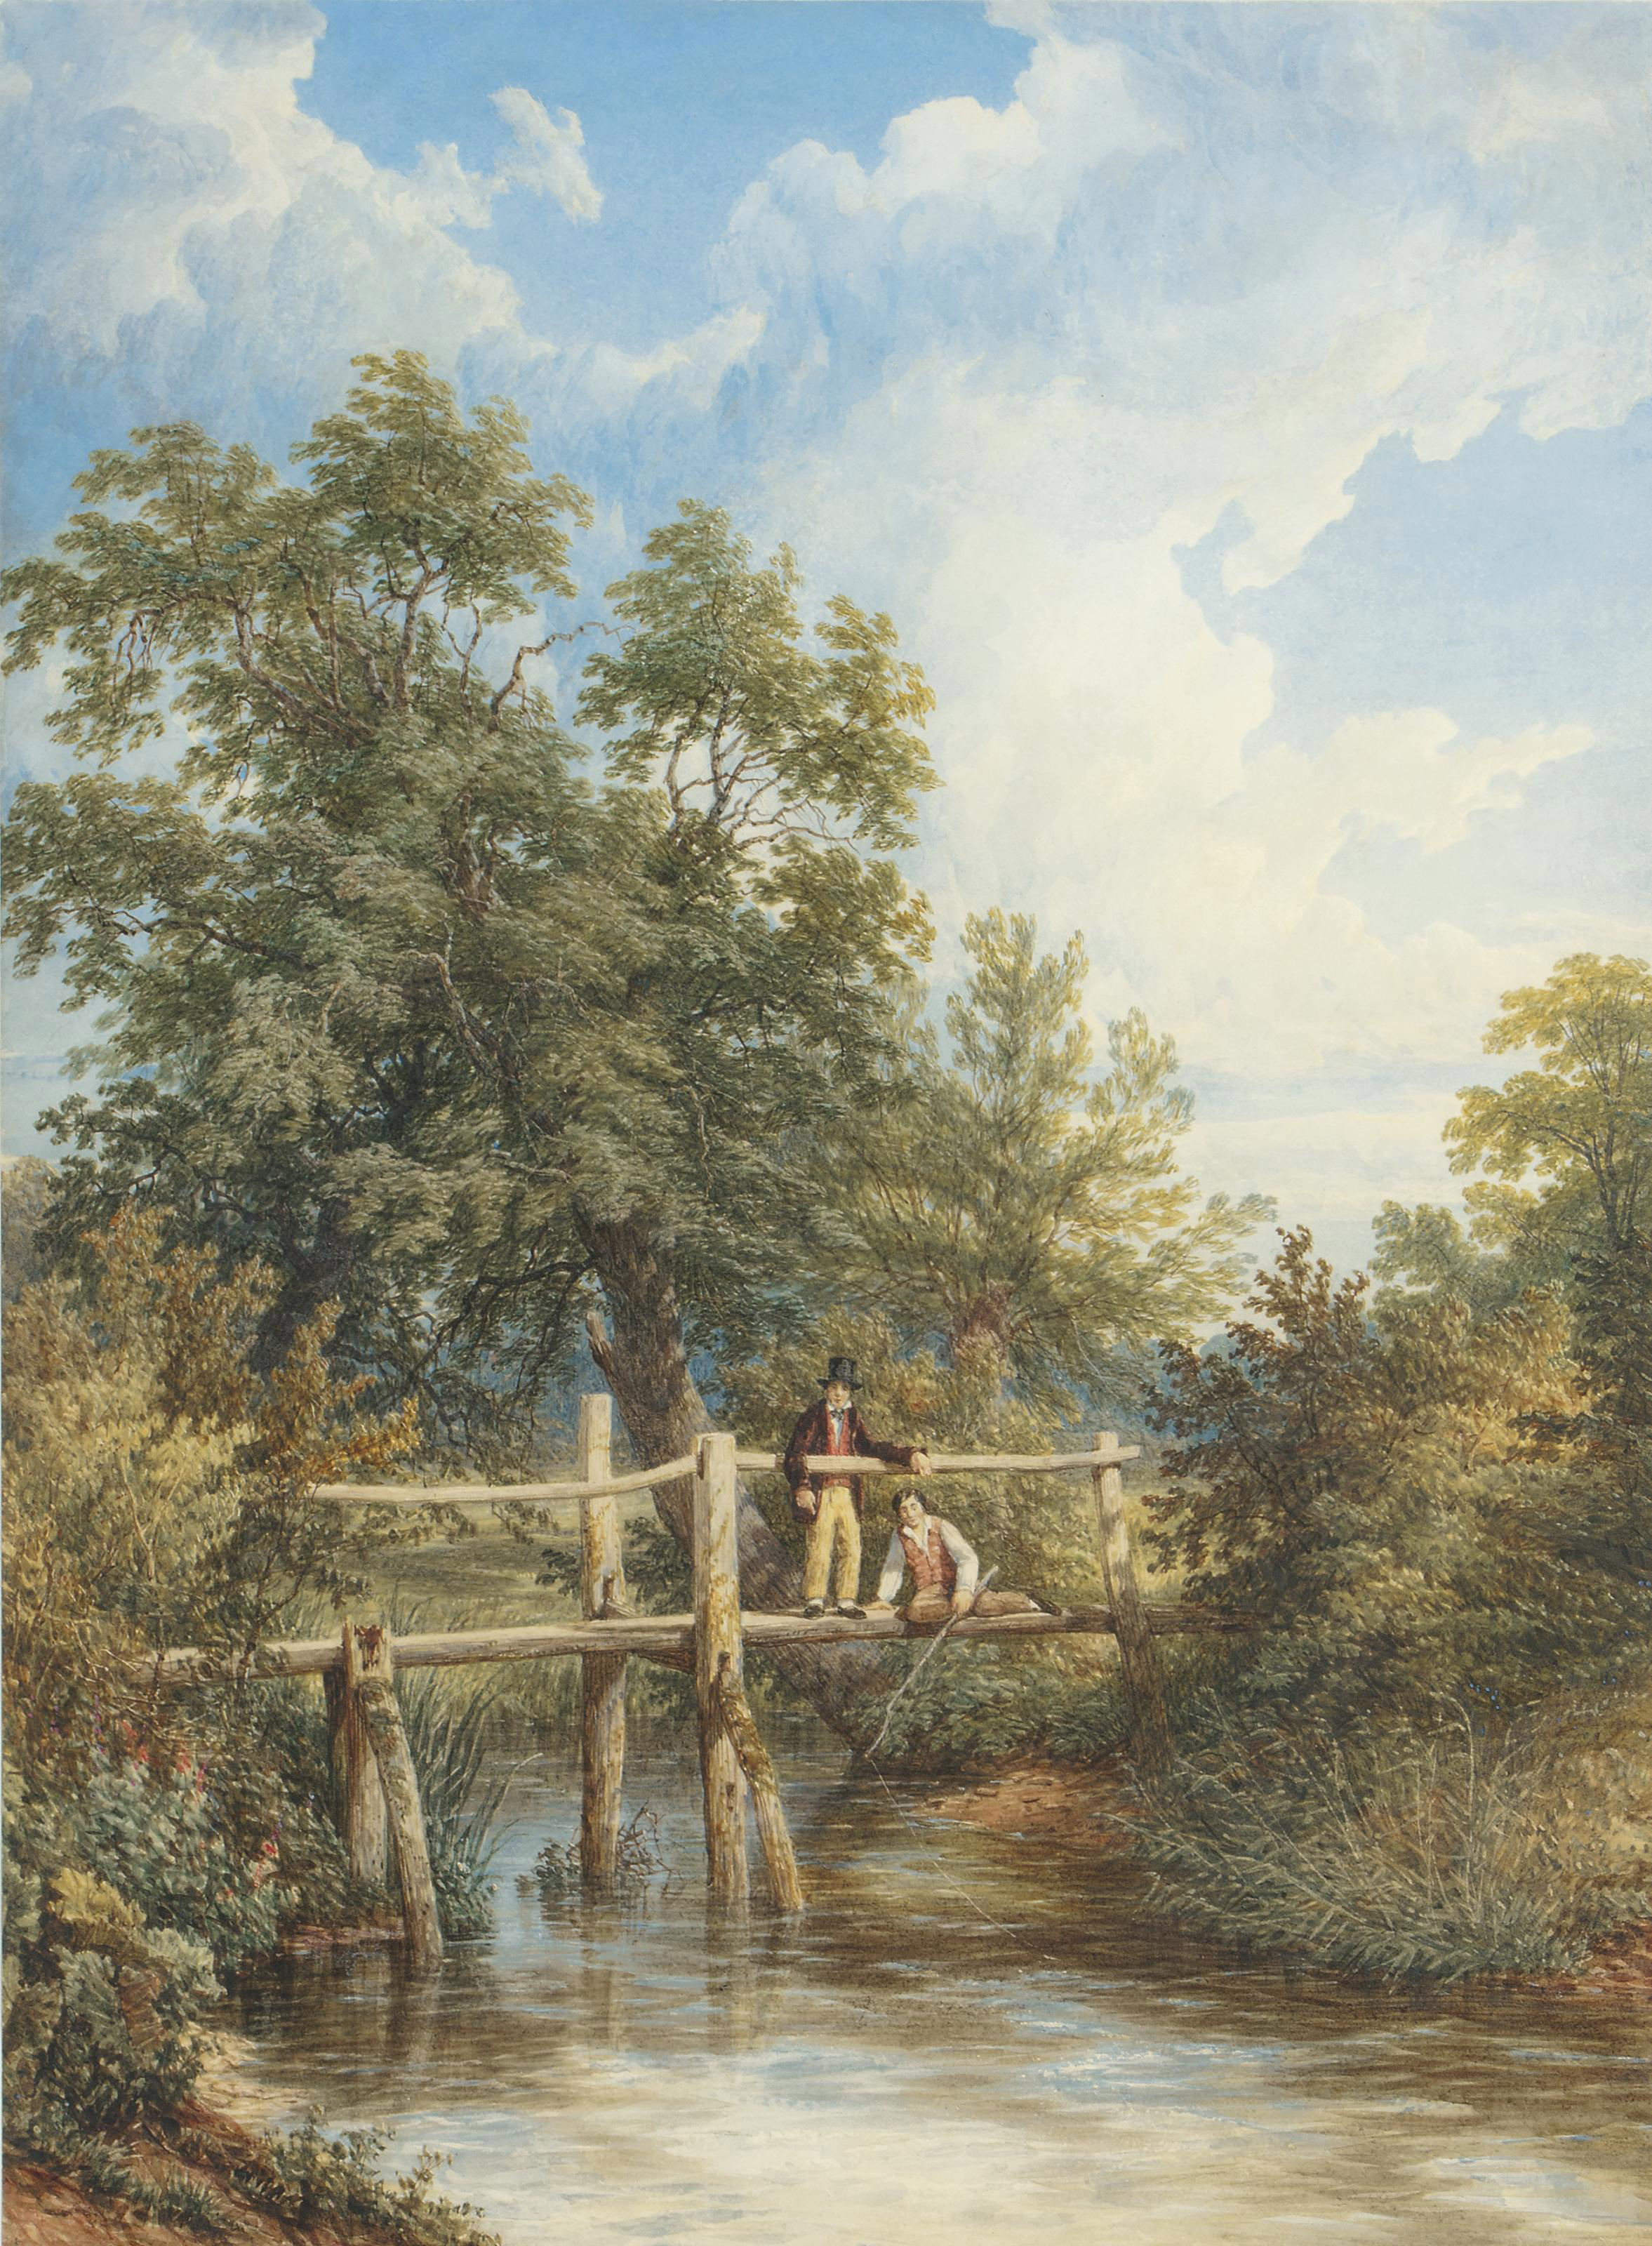 Two boys fishing from a wooden bridge